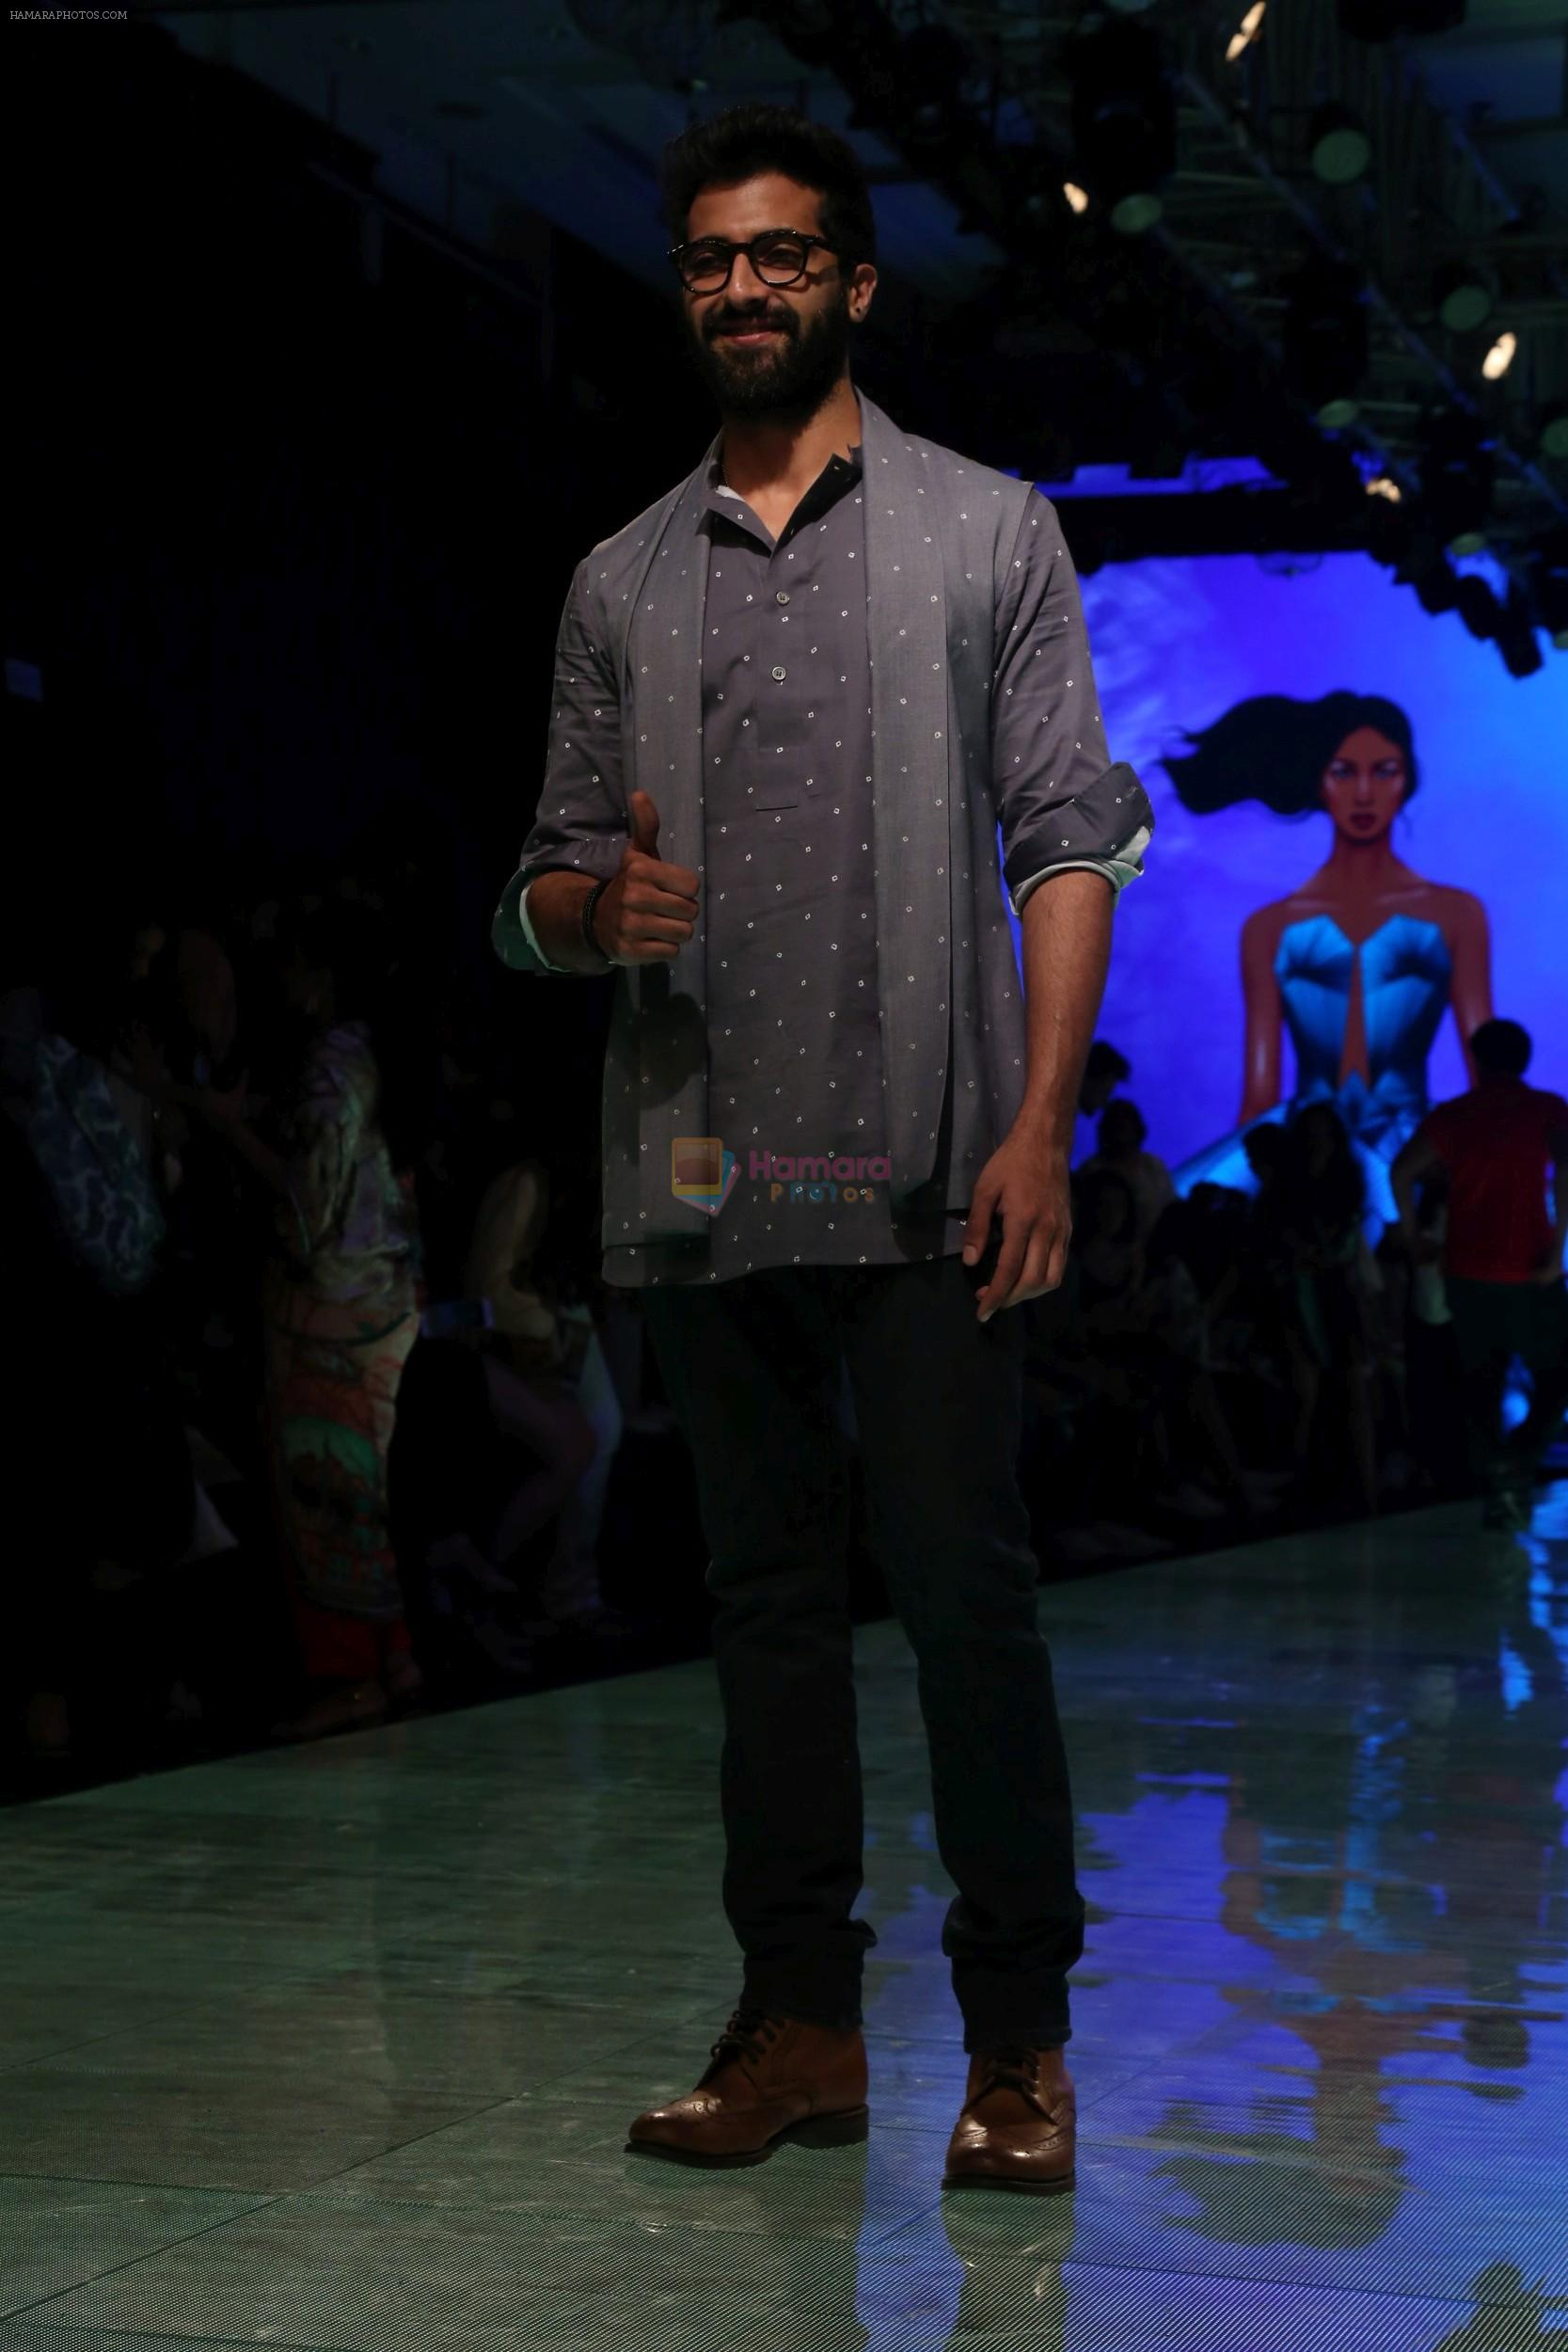 At lakme fashion week 2019 Day 4 on 25th Aug 2019